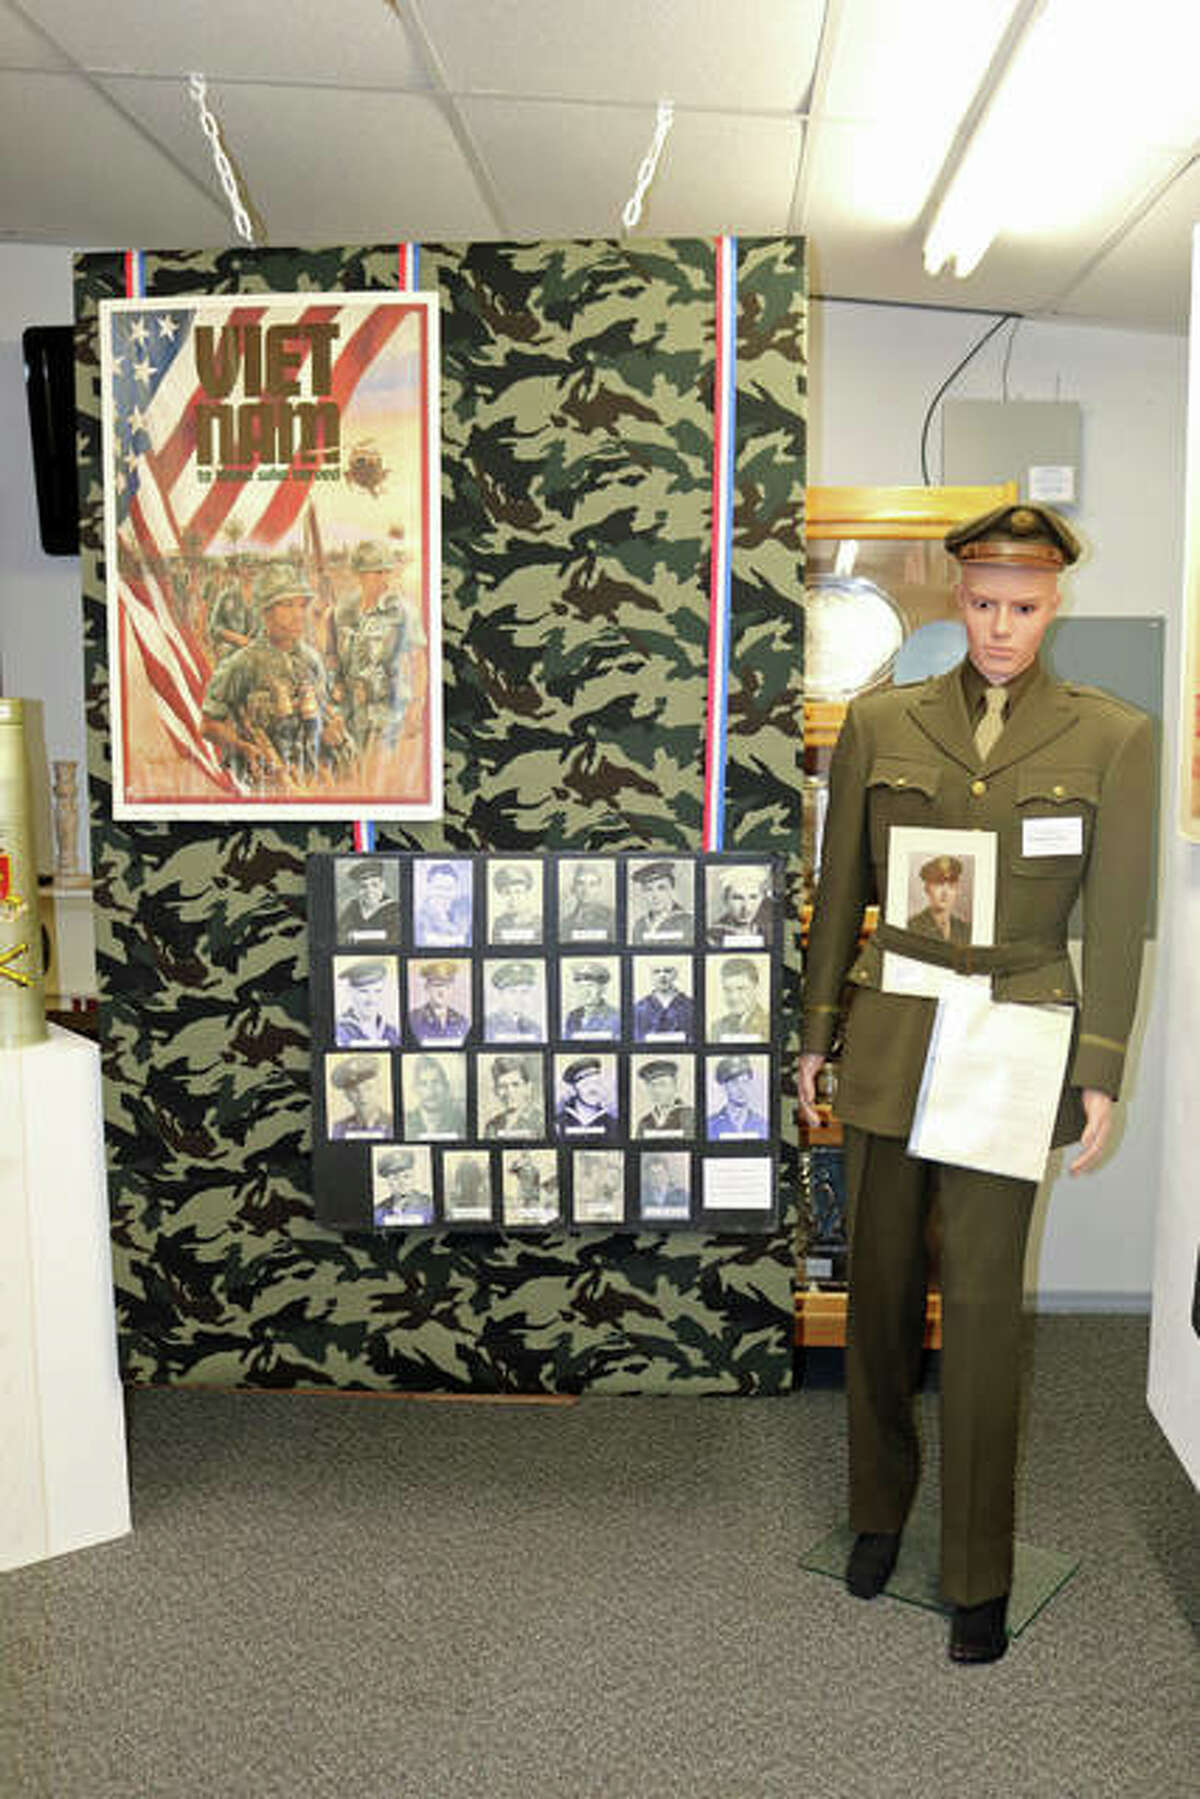 Photos hightlight this year's veterans exhibit at the Wood River Museum and Visitors Center. It includes a map that invites veterans or family members to place a pin in a location identifying where vets had been stationed and or engaged in combat.